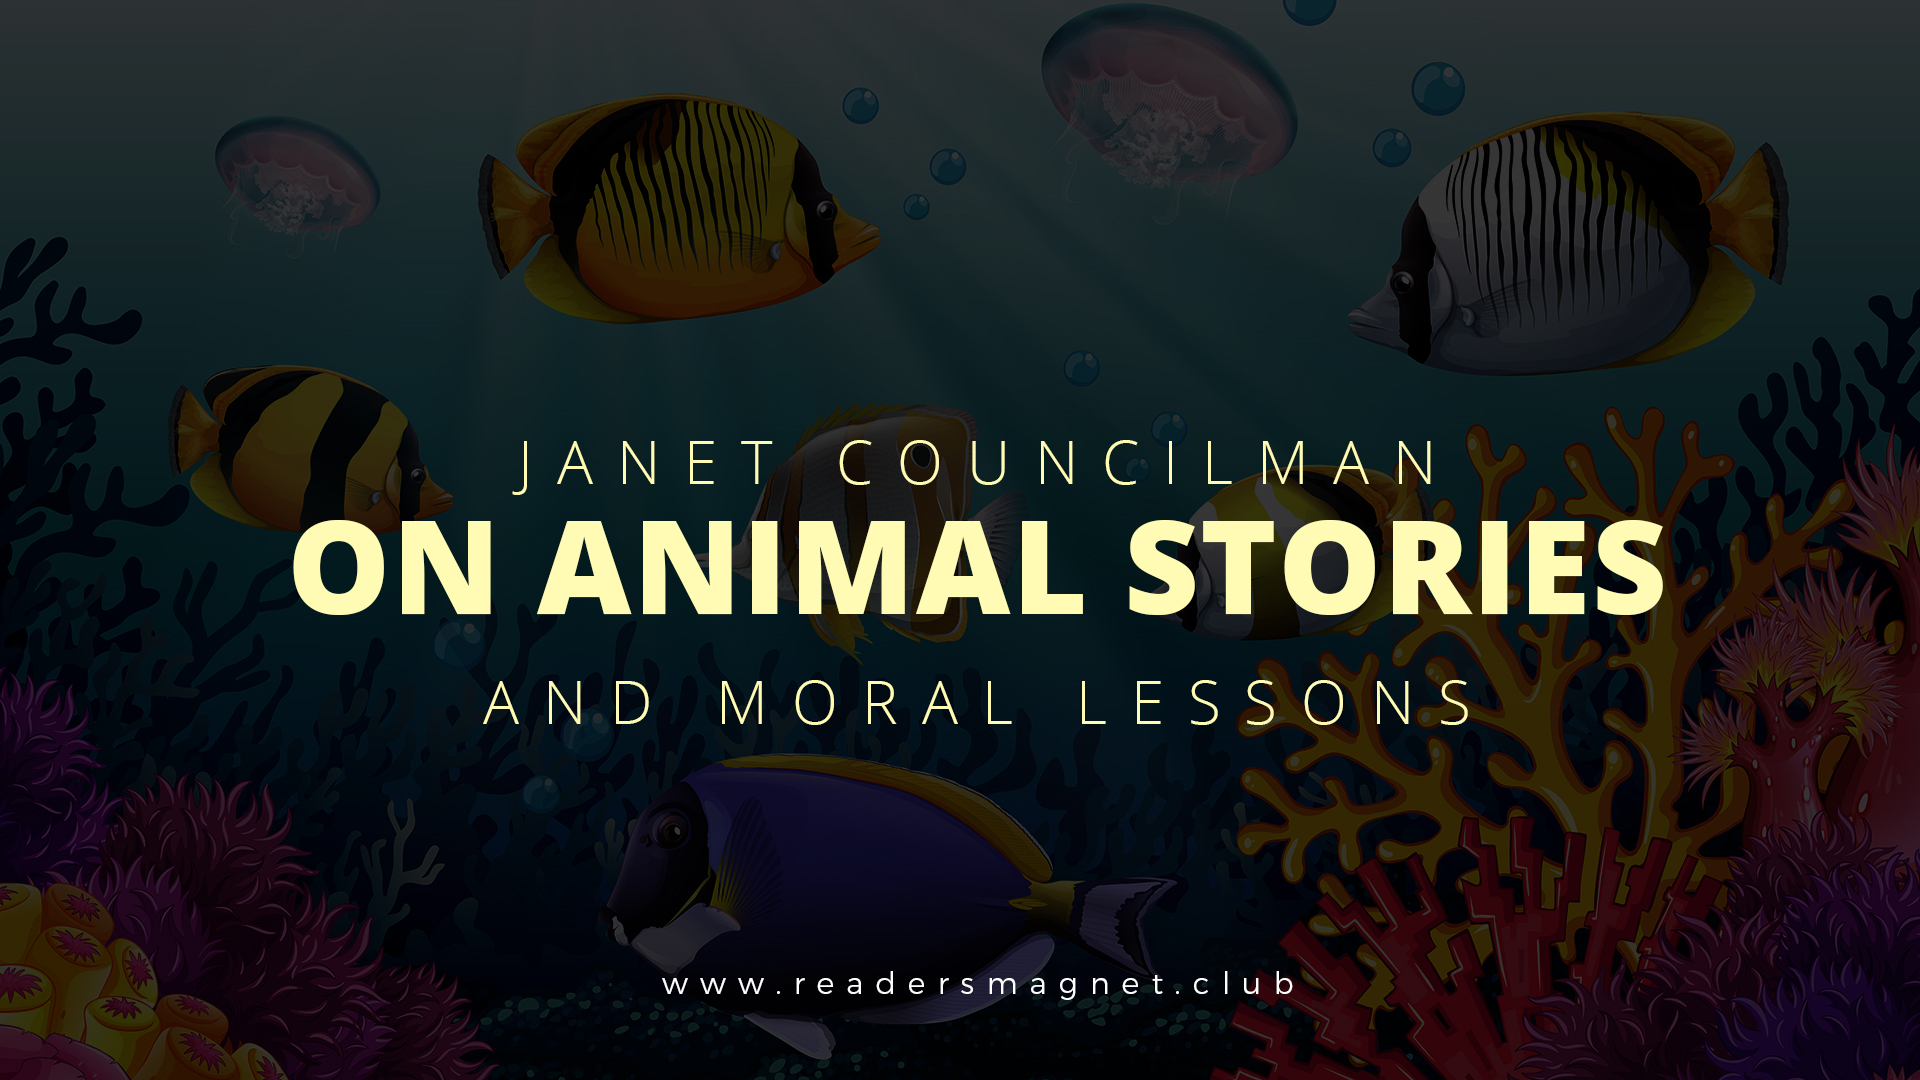 anet Councilman on Animals Stories and Moral Lessons banner